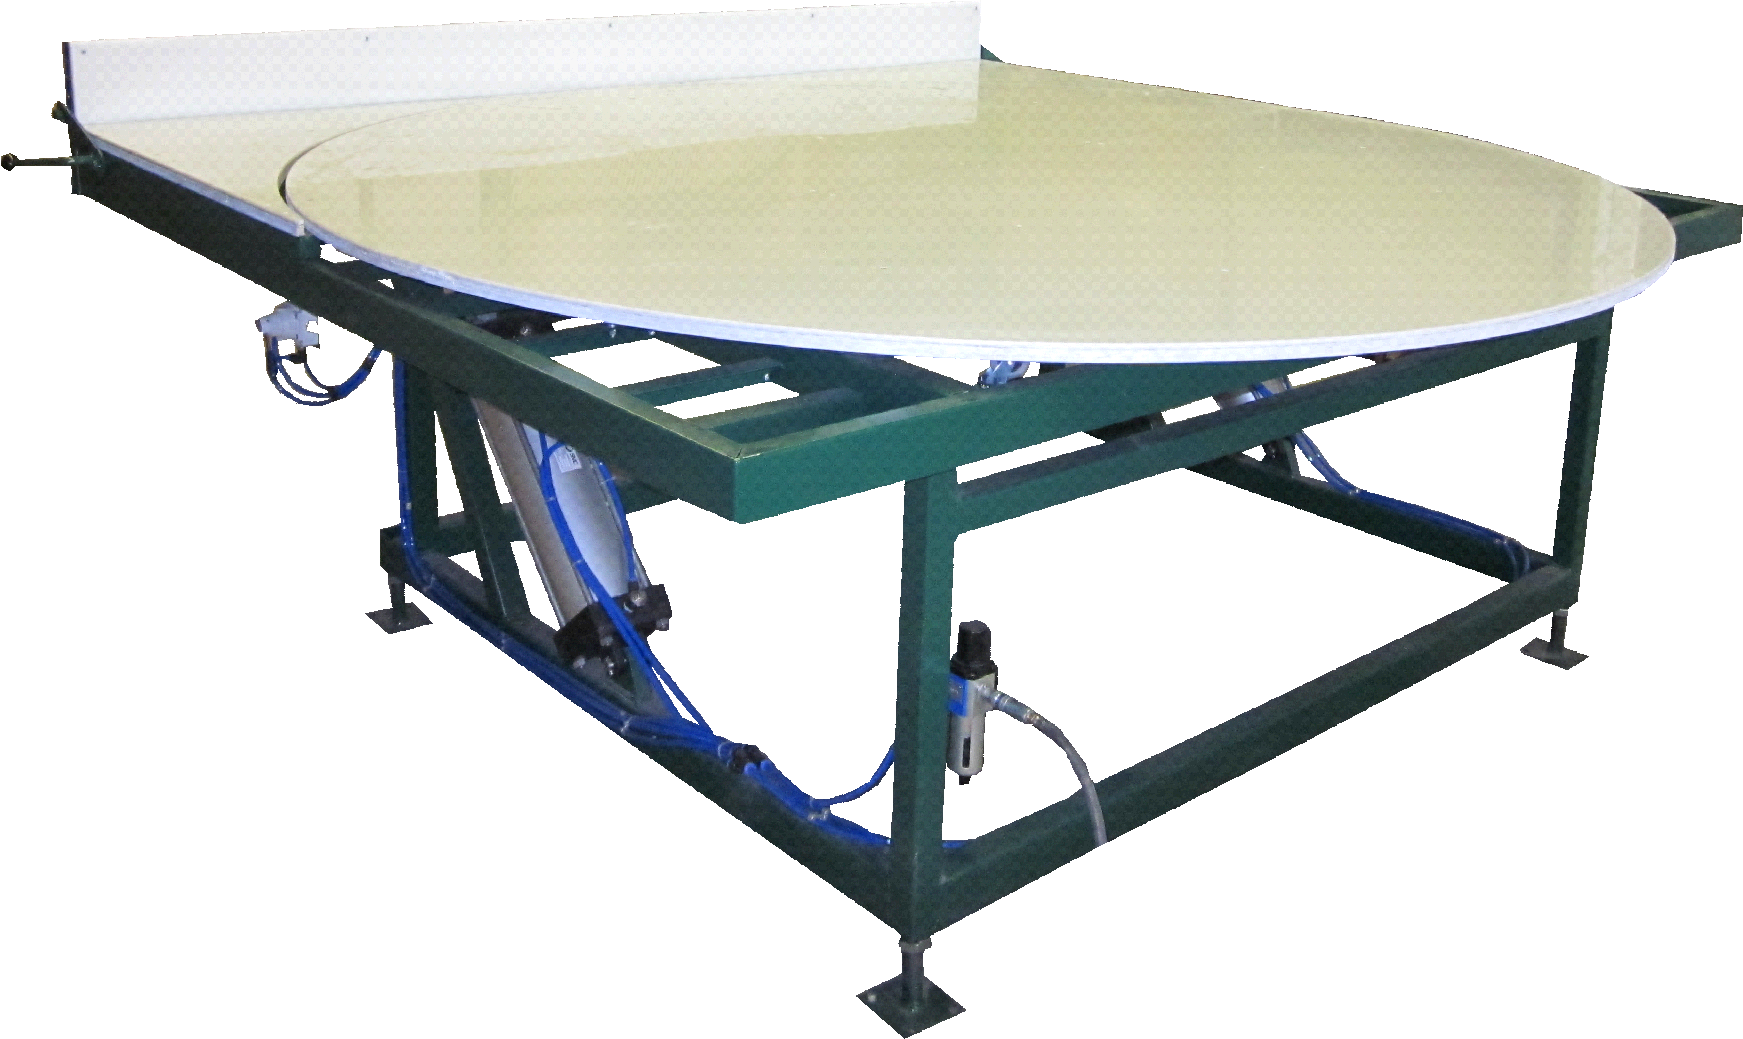 Pneumatic Tilting Rotated Table